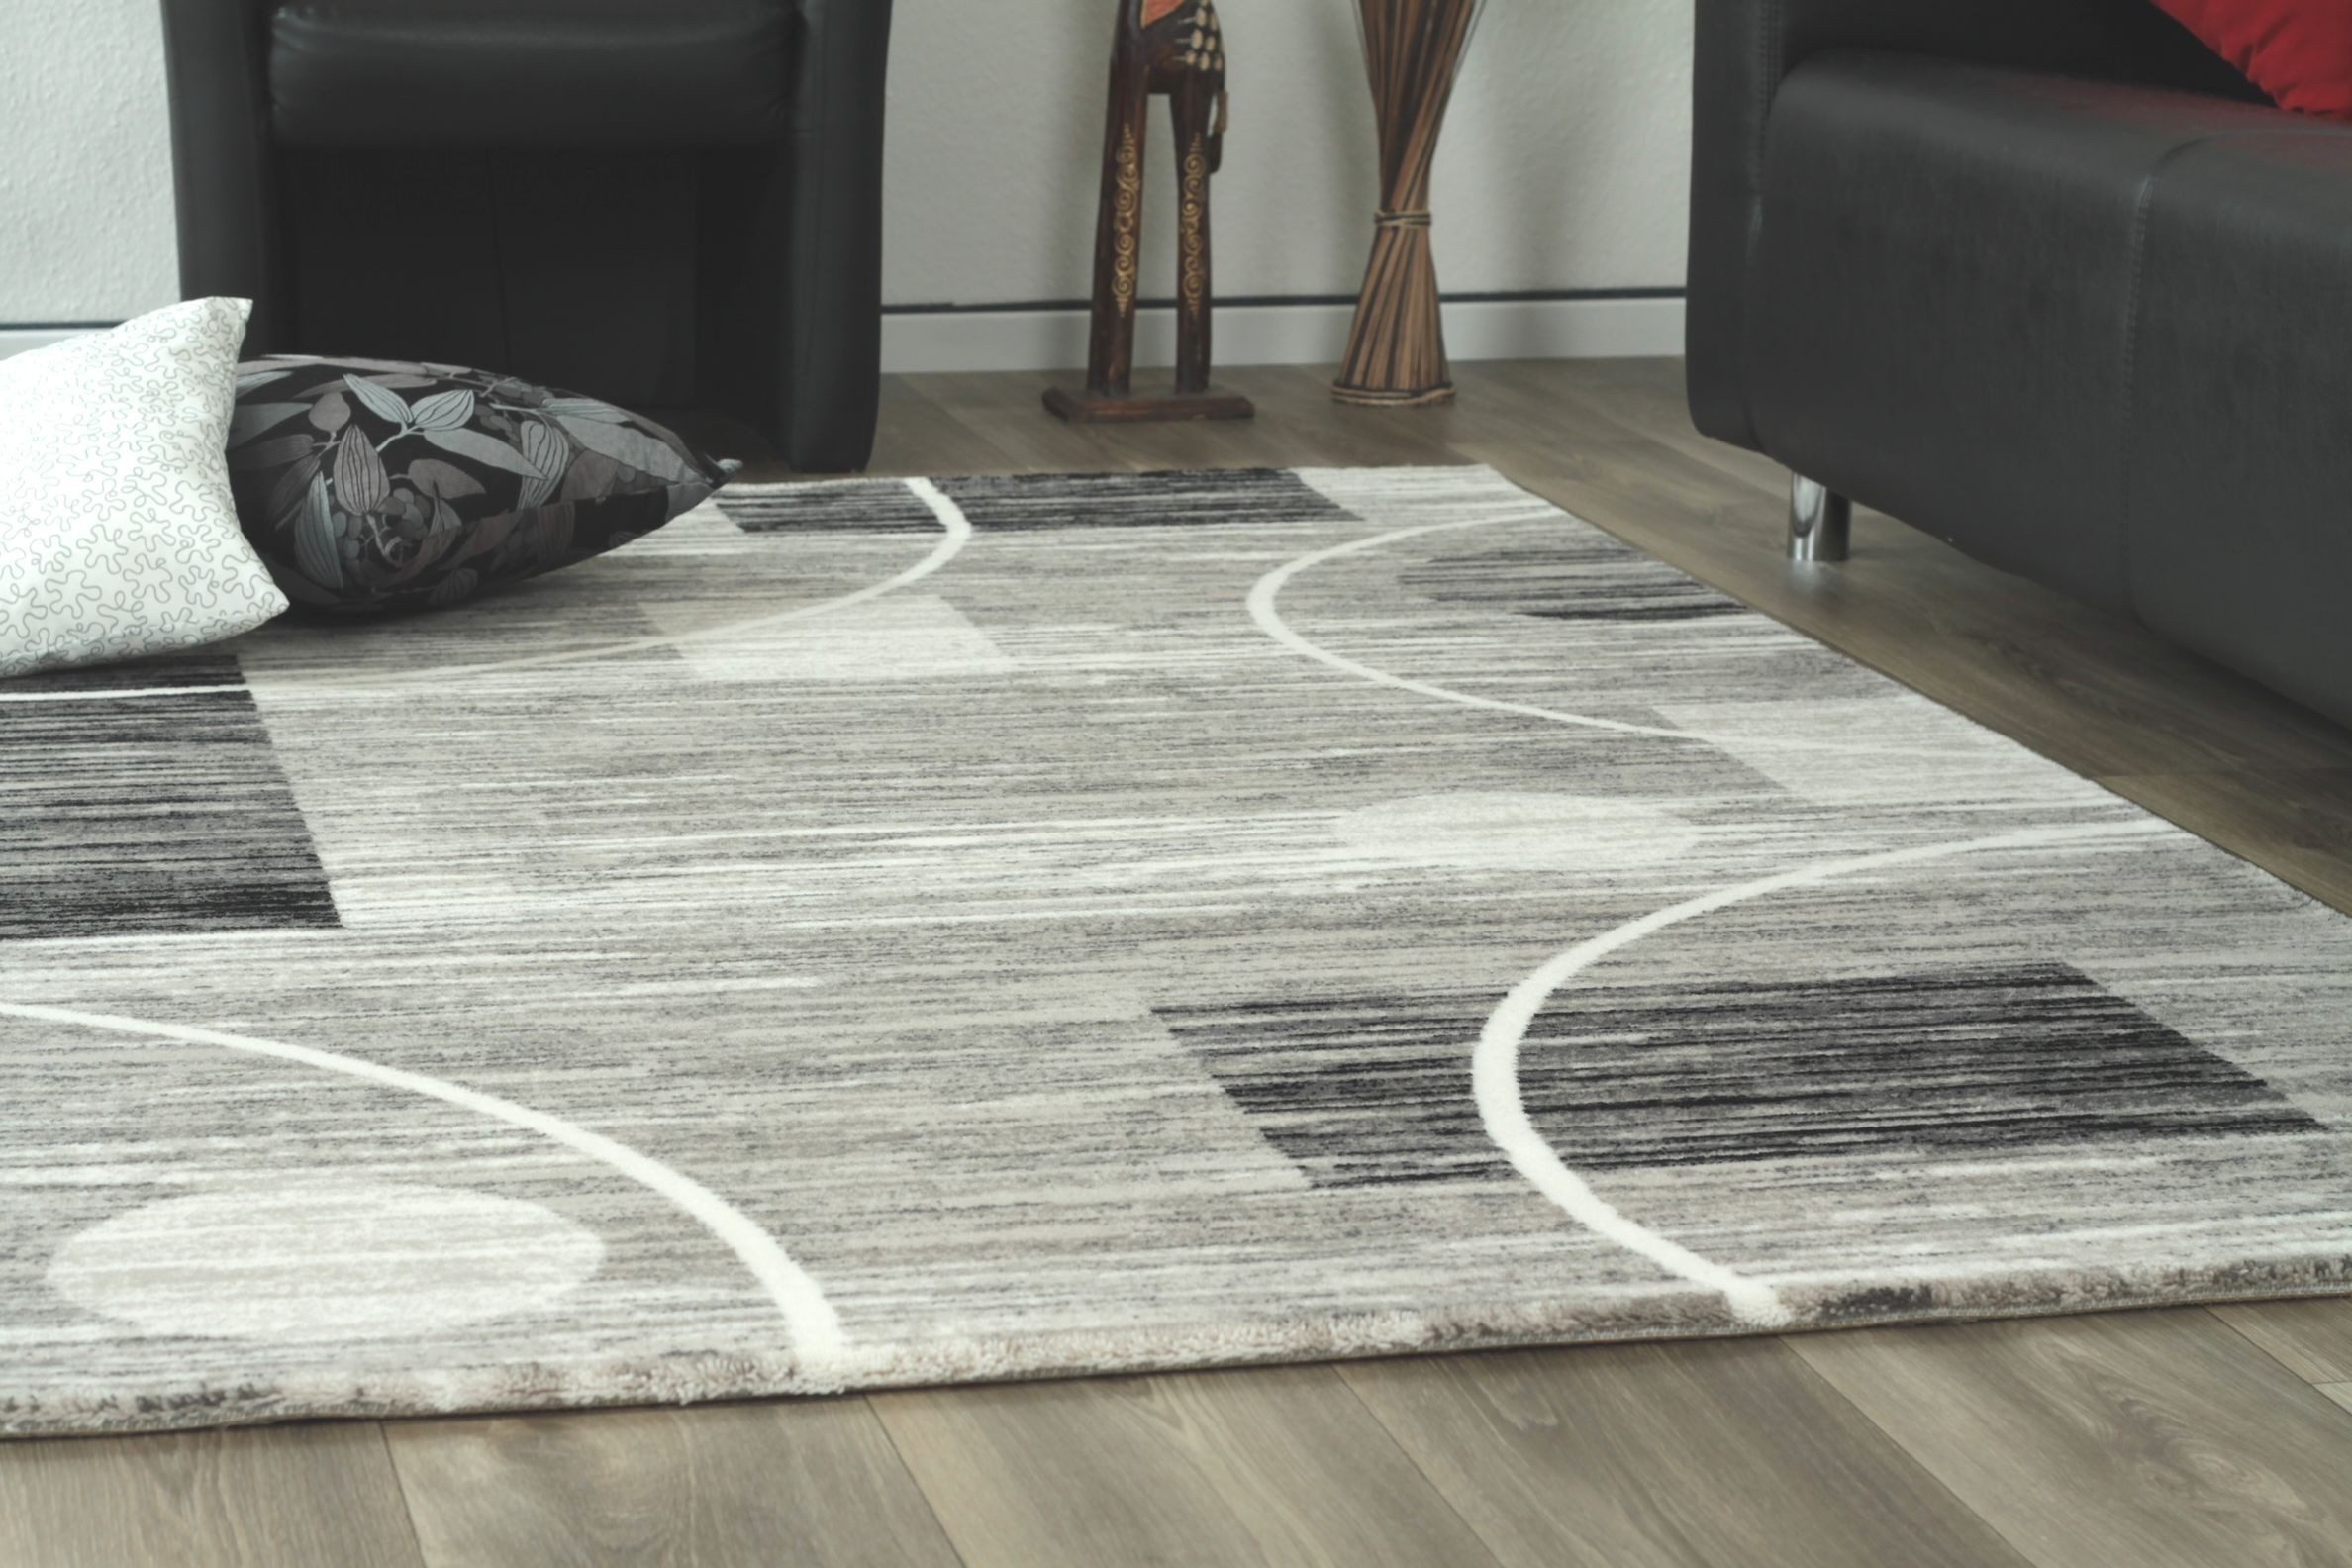 Tapis de salon design en acrylique moderne nevio 6 for Tapis pas cher pour salon